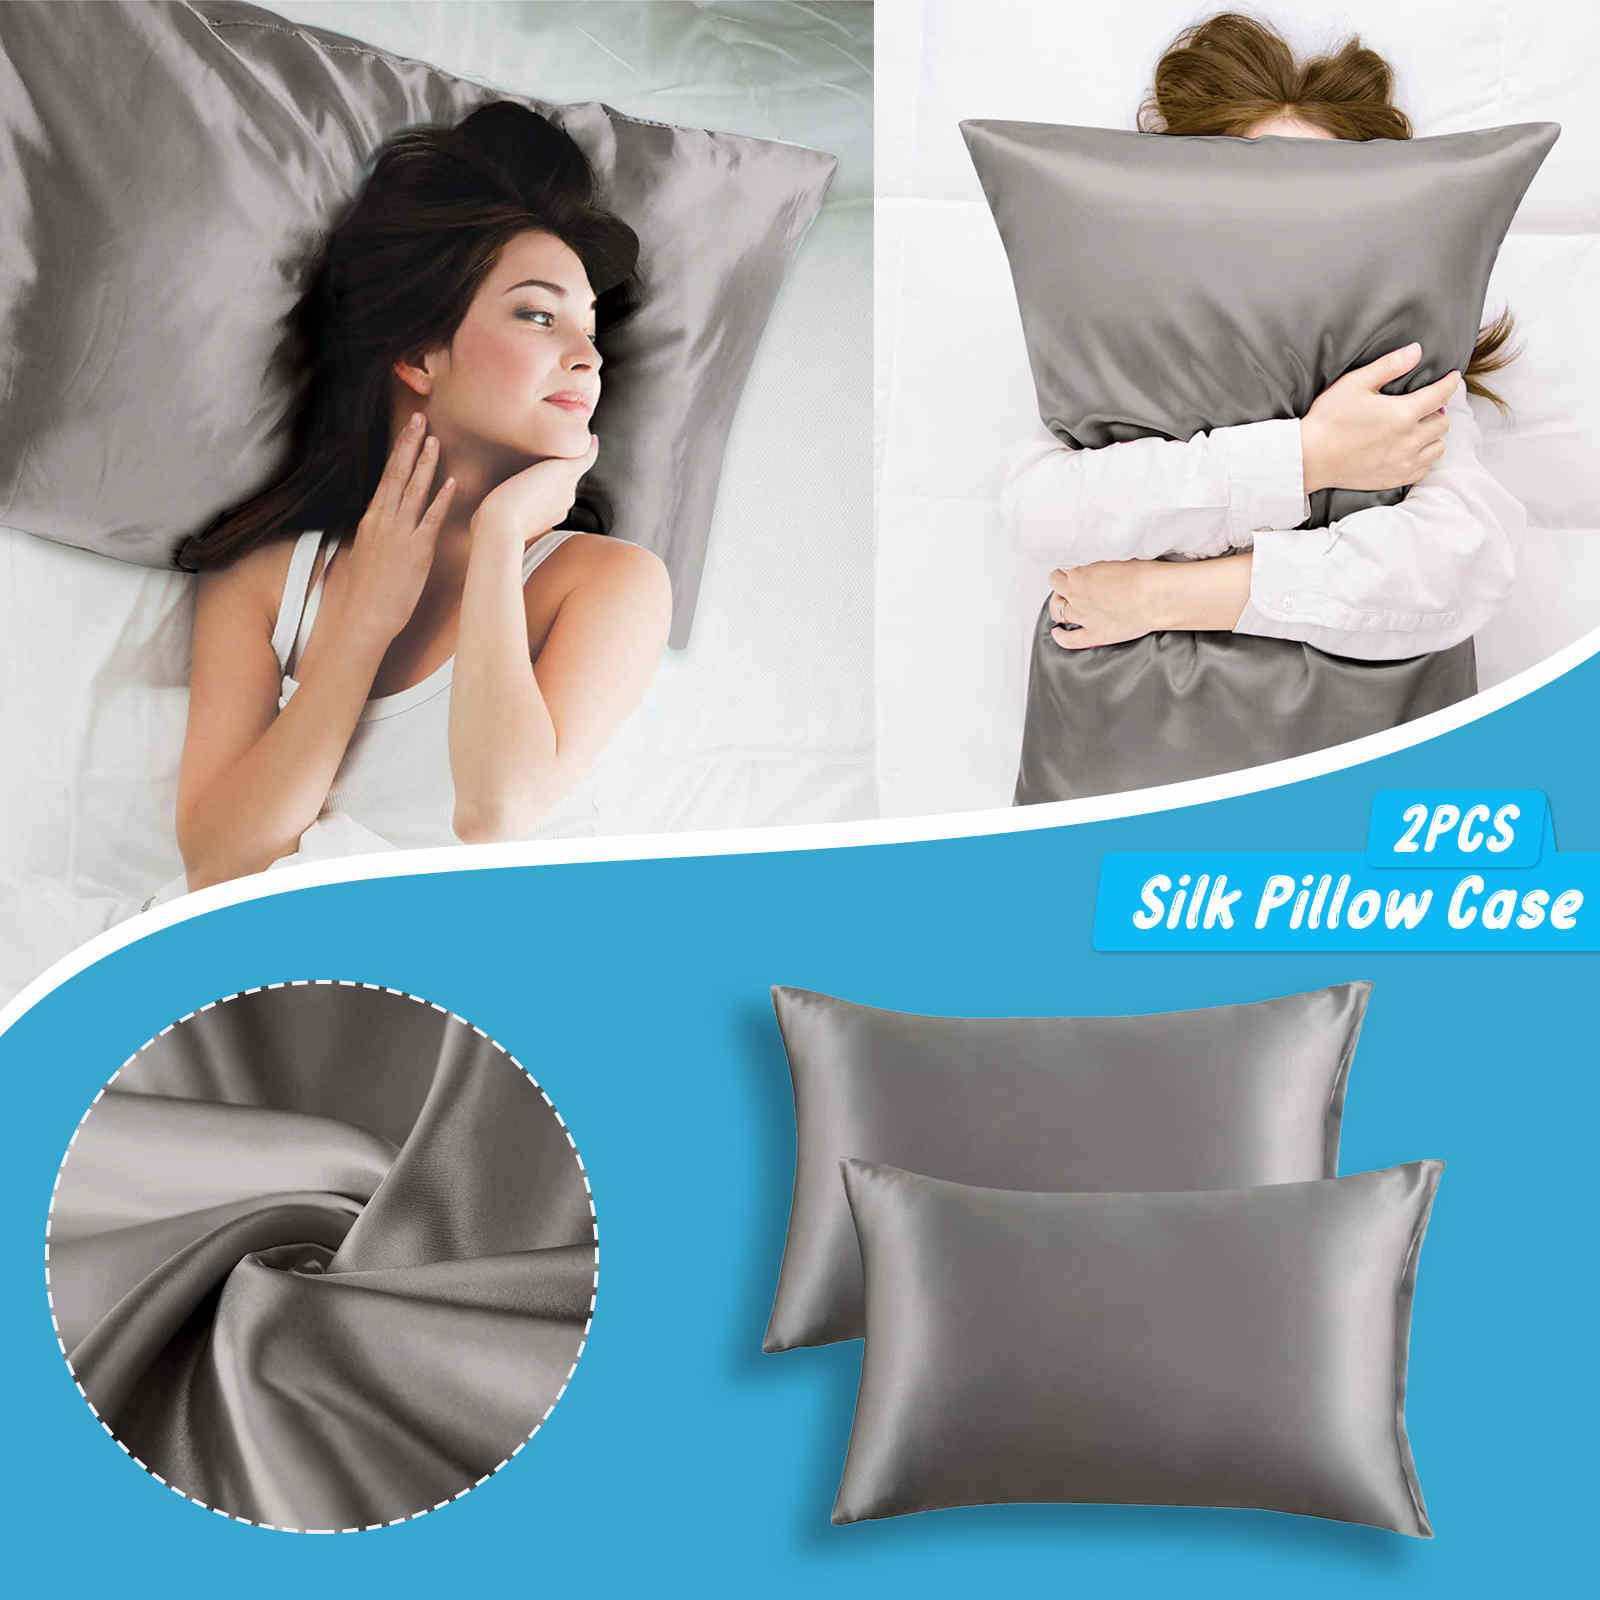 2pcs standard size 20x26 inches satin pillow covers with envelope closure silk satin pillowcases home decoration cushion cover